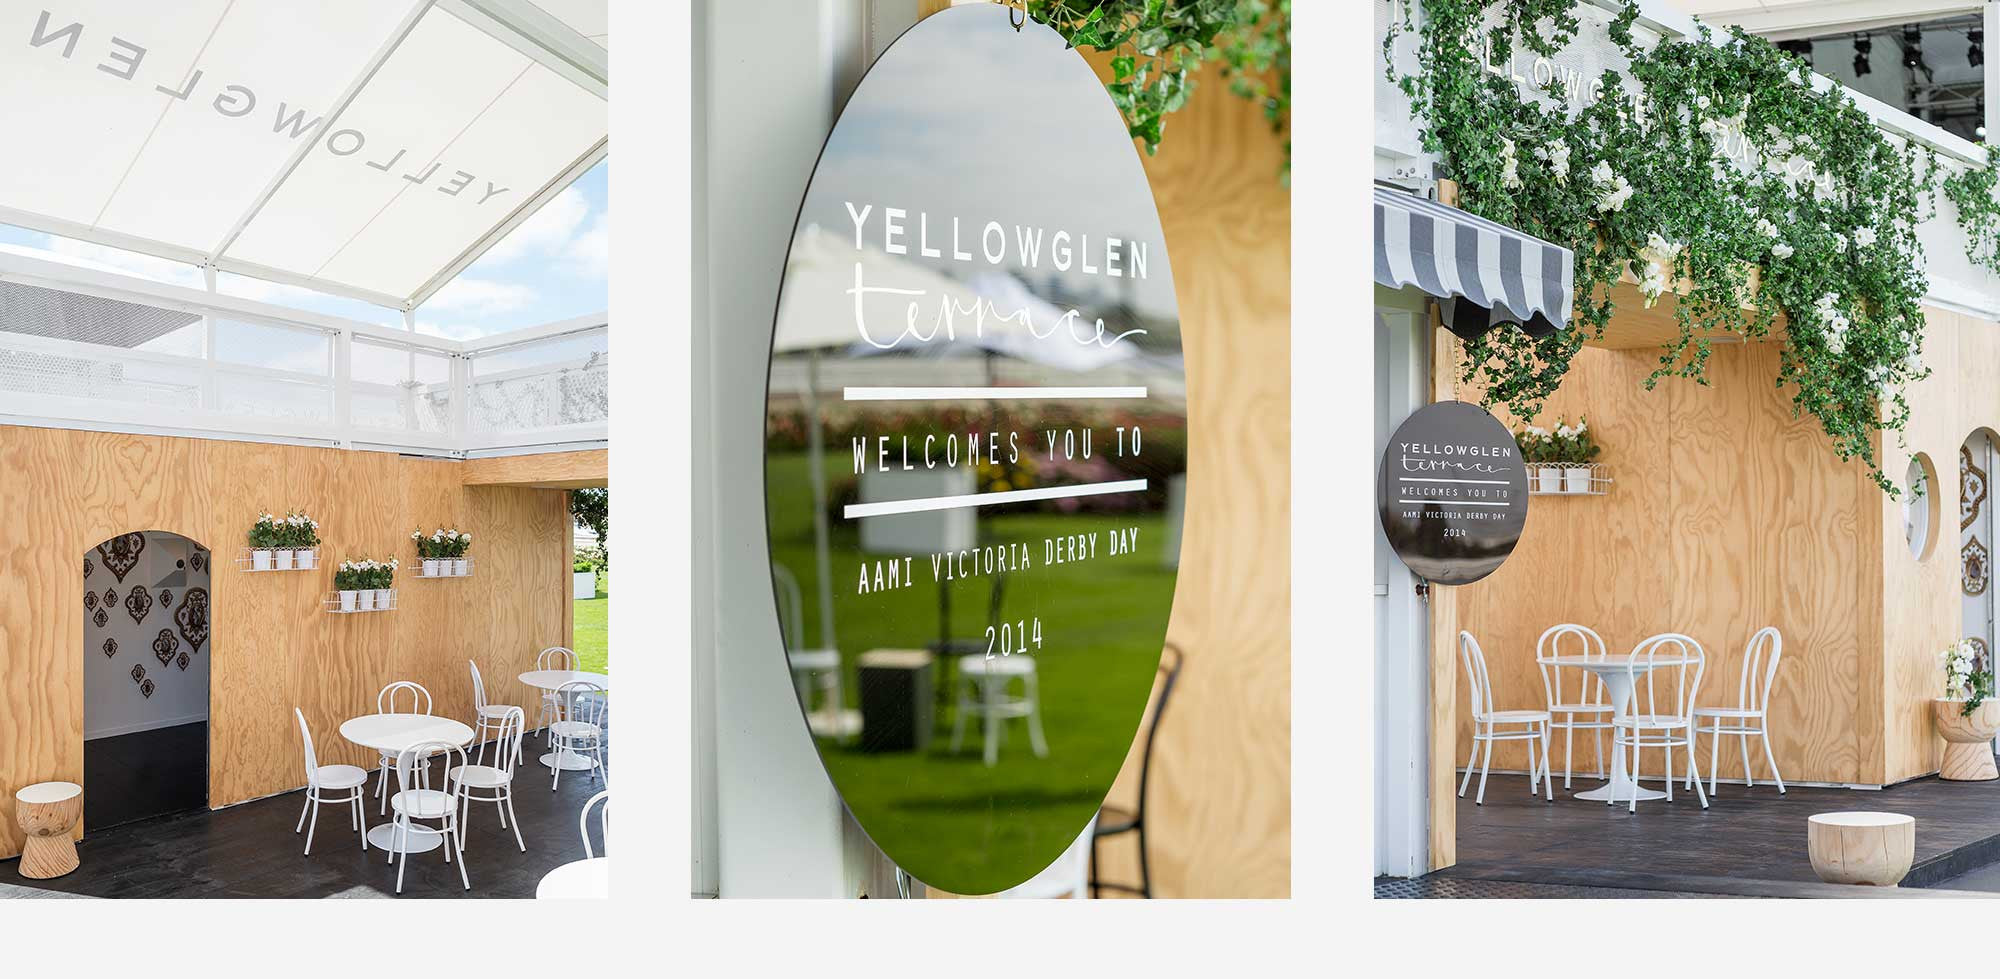 YELLOWGLEN TERRACE <BR> MELBOURNE CUP CARNIVAL <BR> YEAR ONE